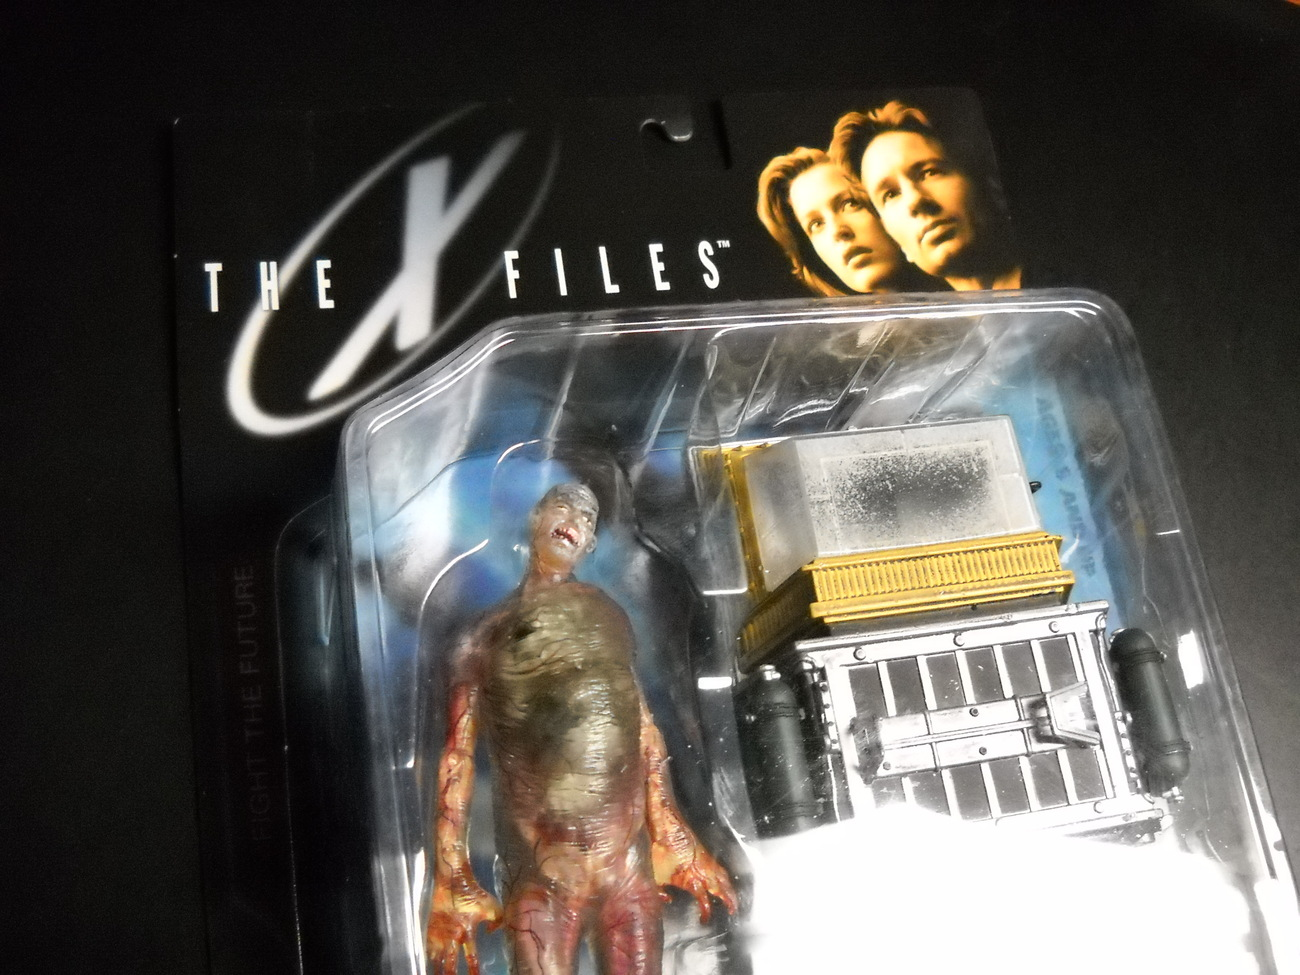 X Files McFarlane Toys Fireman and Cryolitter 1998 Series 1 Still Sealed on Card